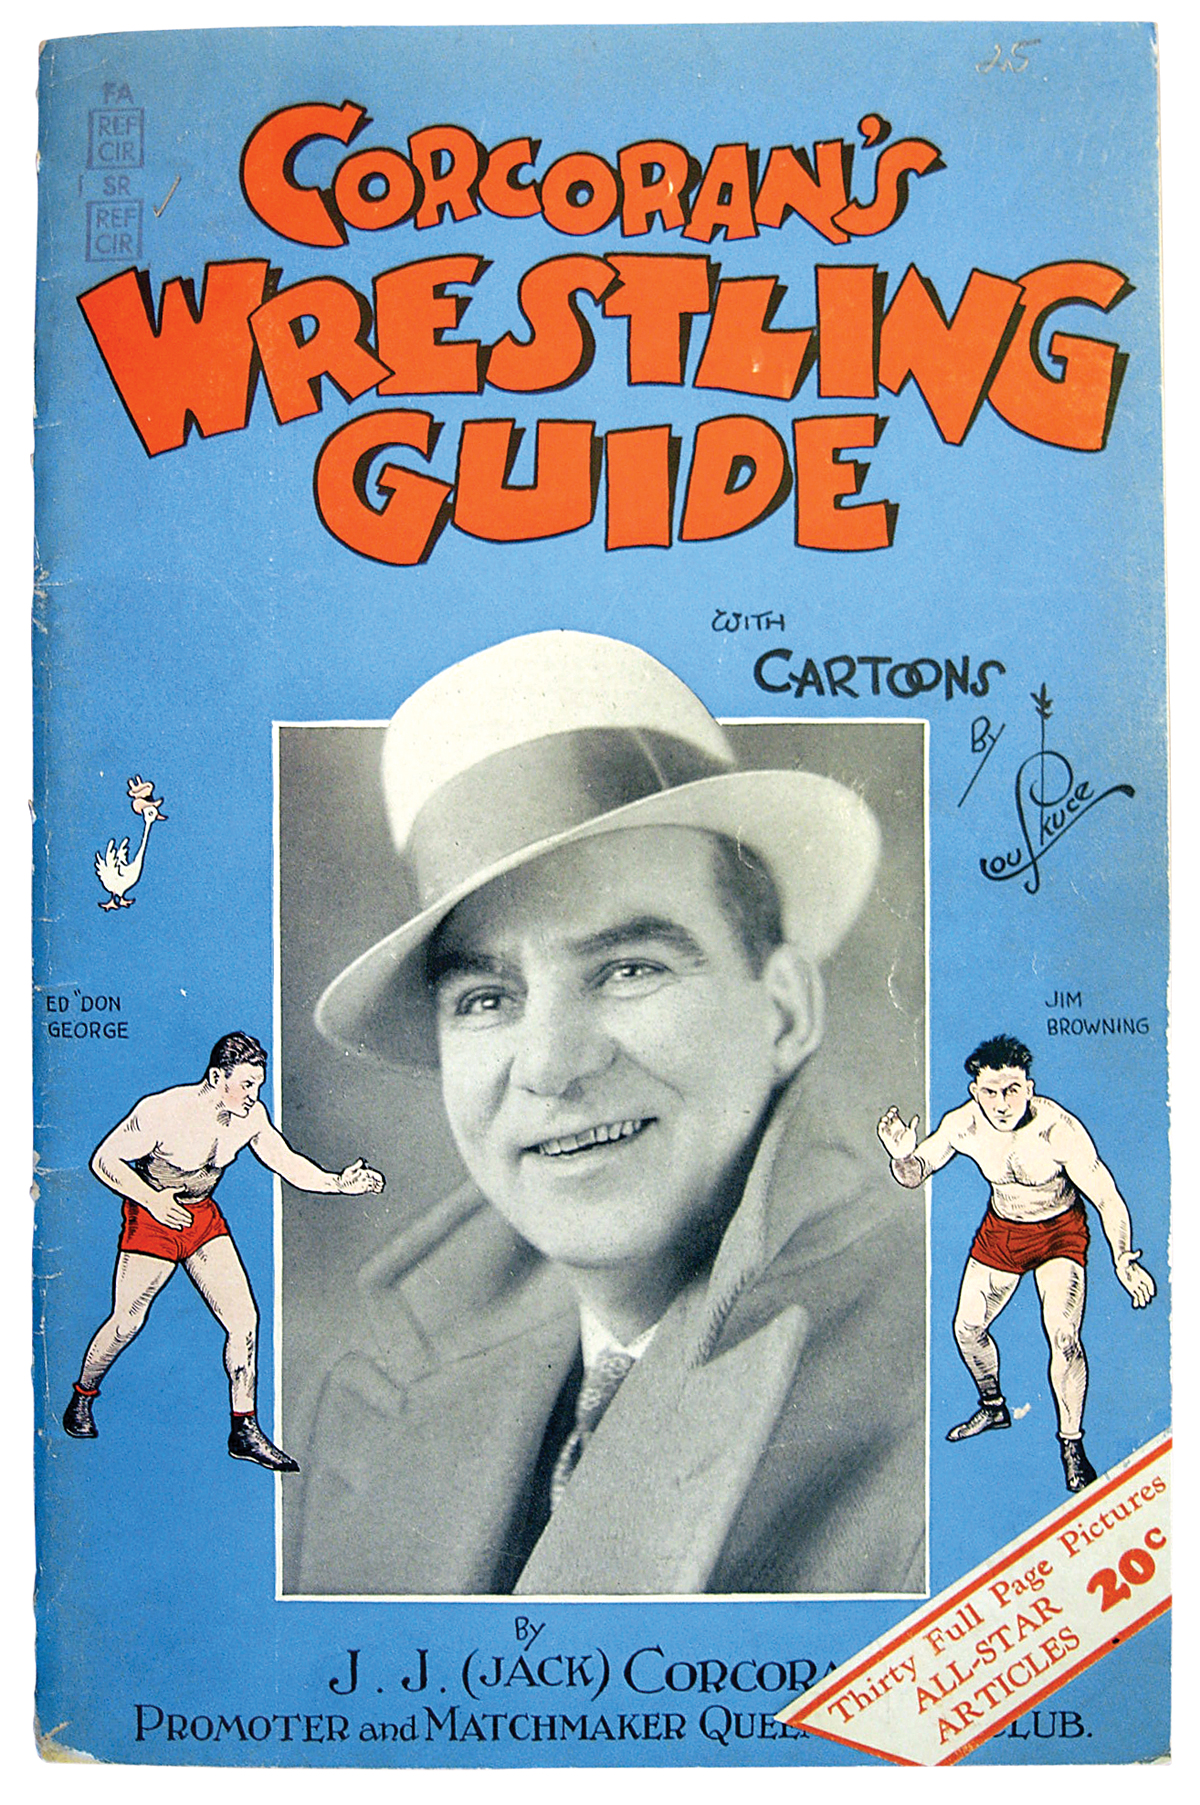 Photo of Corcoran's Wrestling Guide